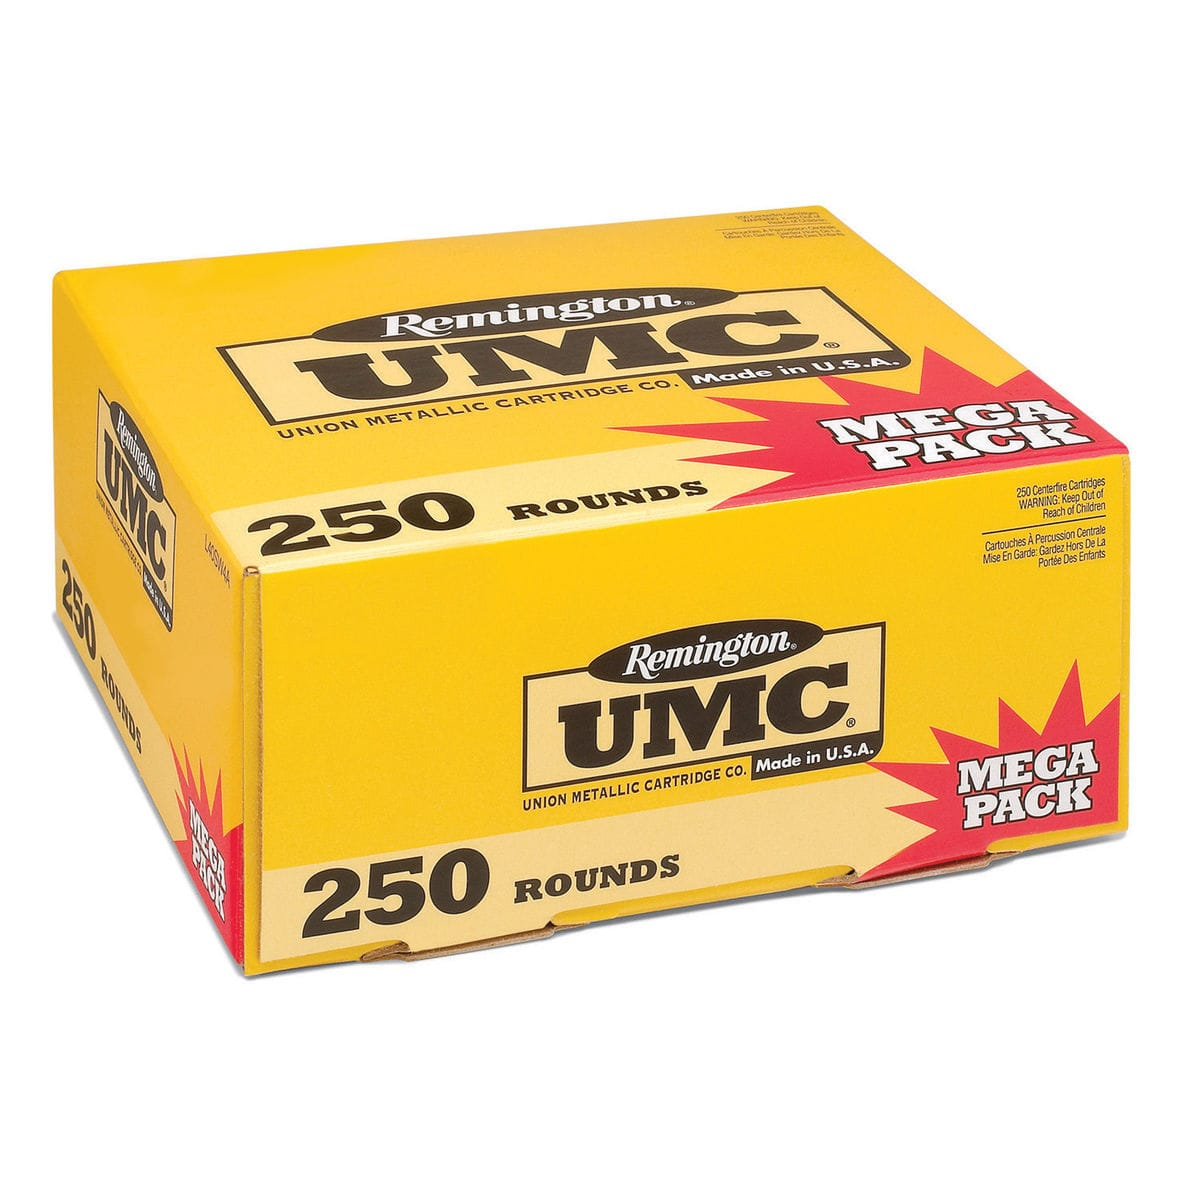 Remington UMC 9mm Ammo as cheap as $56.99-$12.50 rebate=44.49 for 250 rounds B&M only - Sold out online